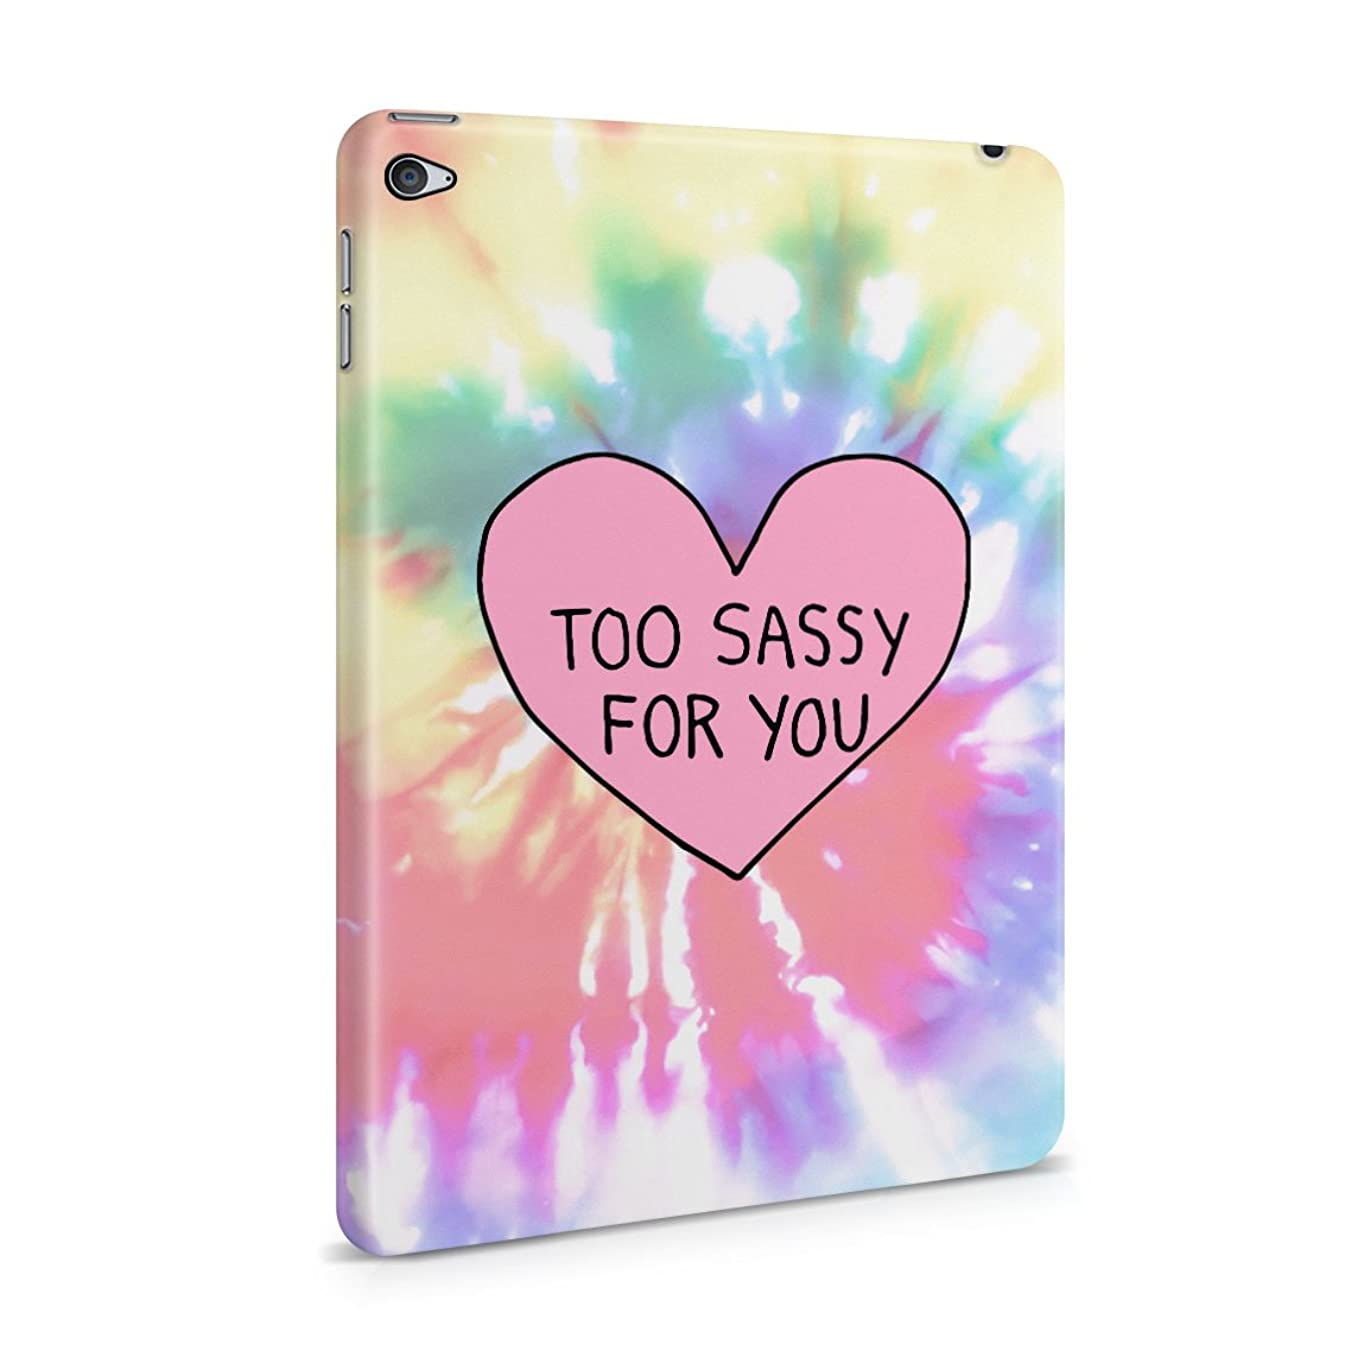 Too Sassy For You Heart Trippy Tie Dye Plastic Tablet Snap On Back Cover Shell For iPad Mini 4